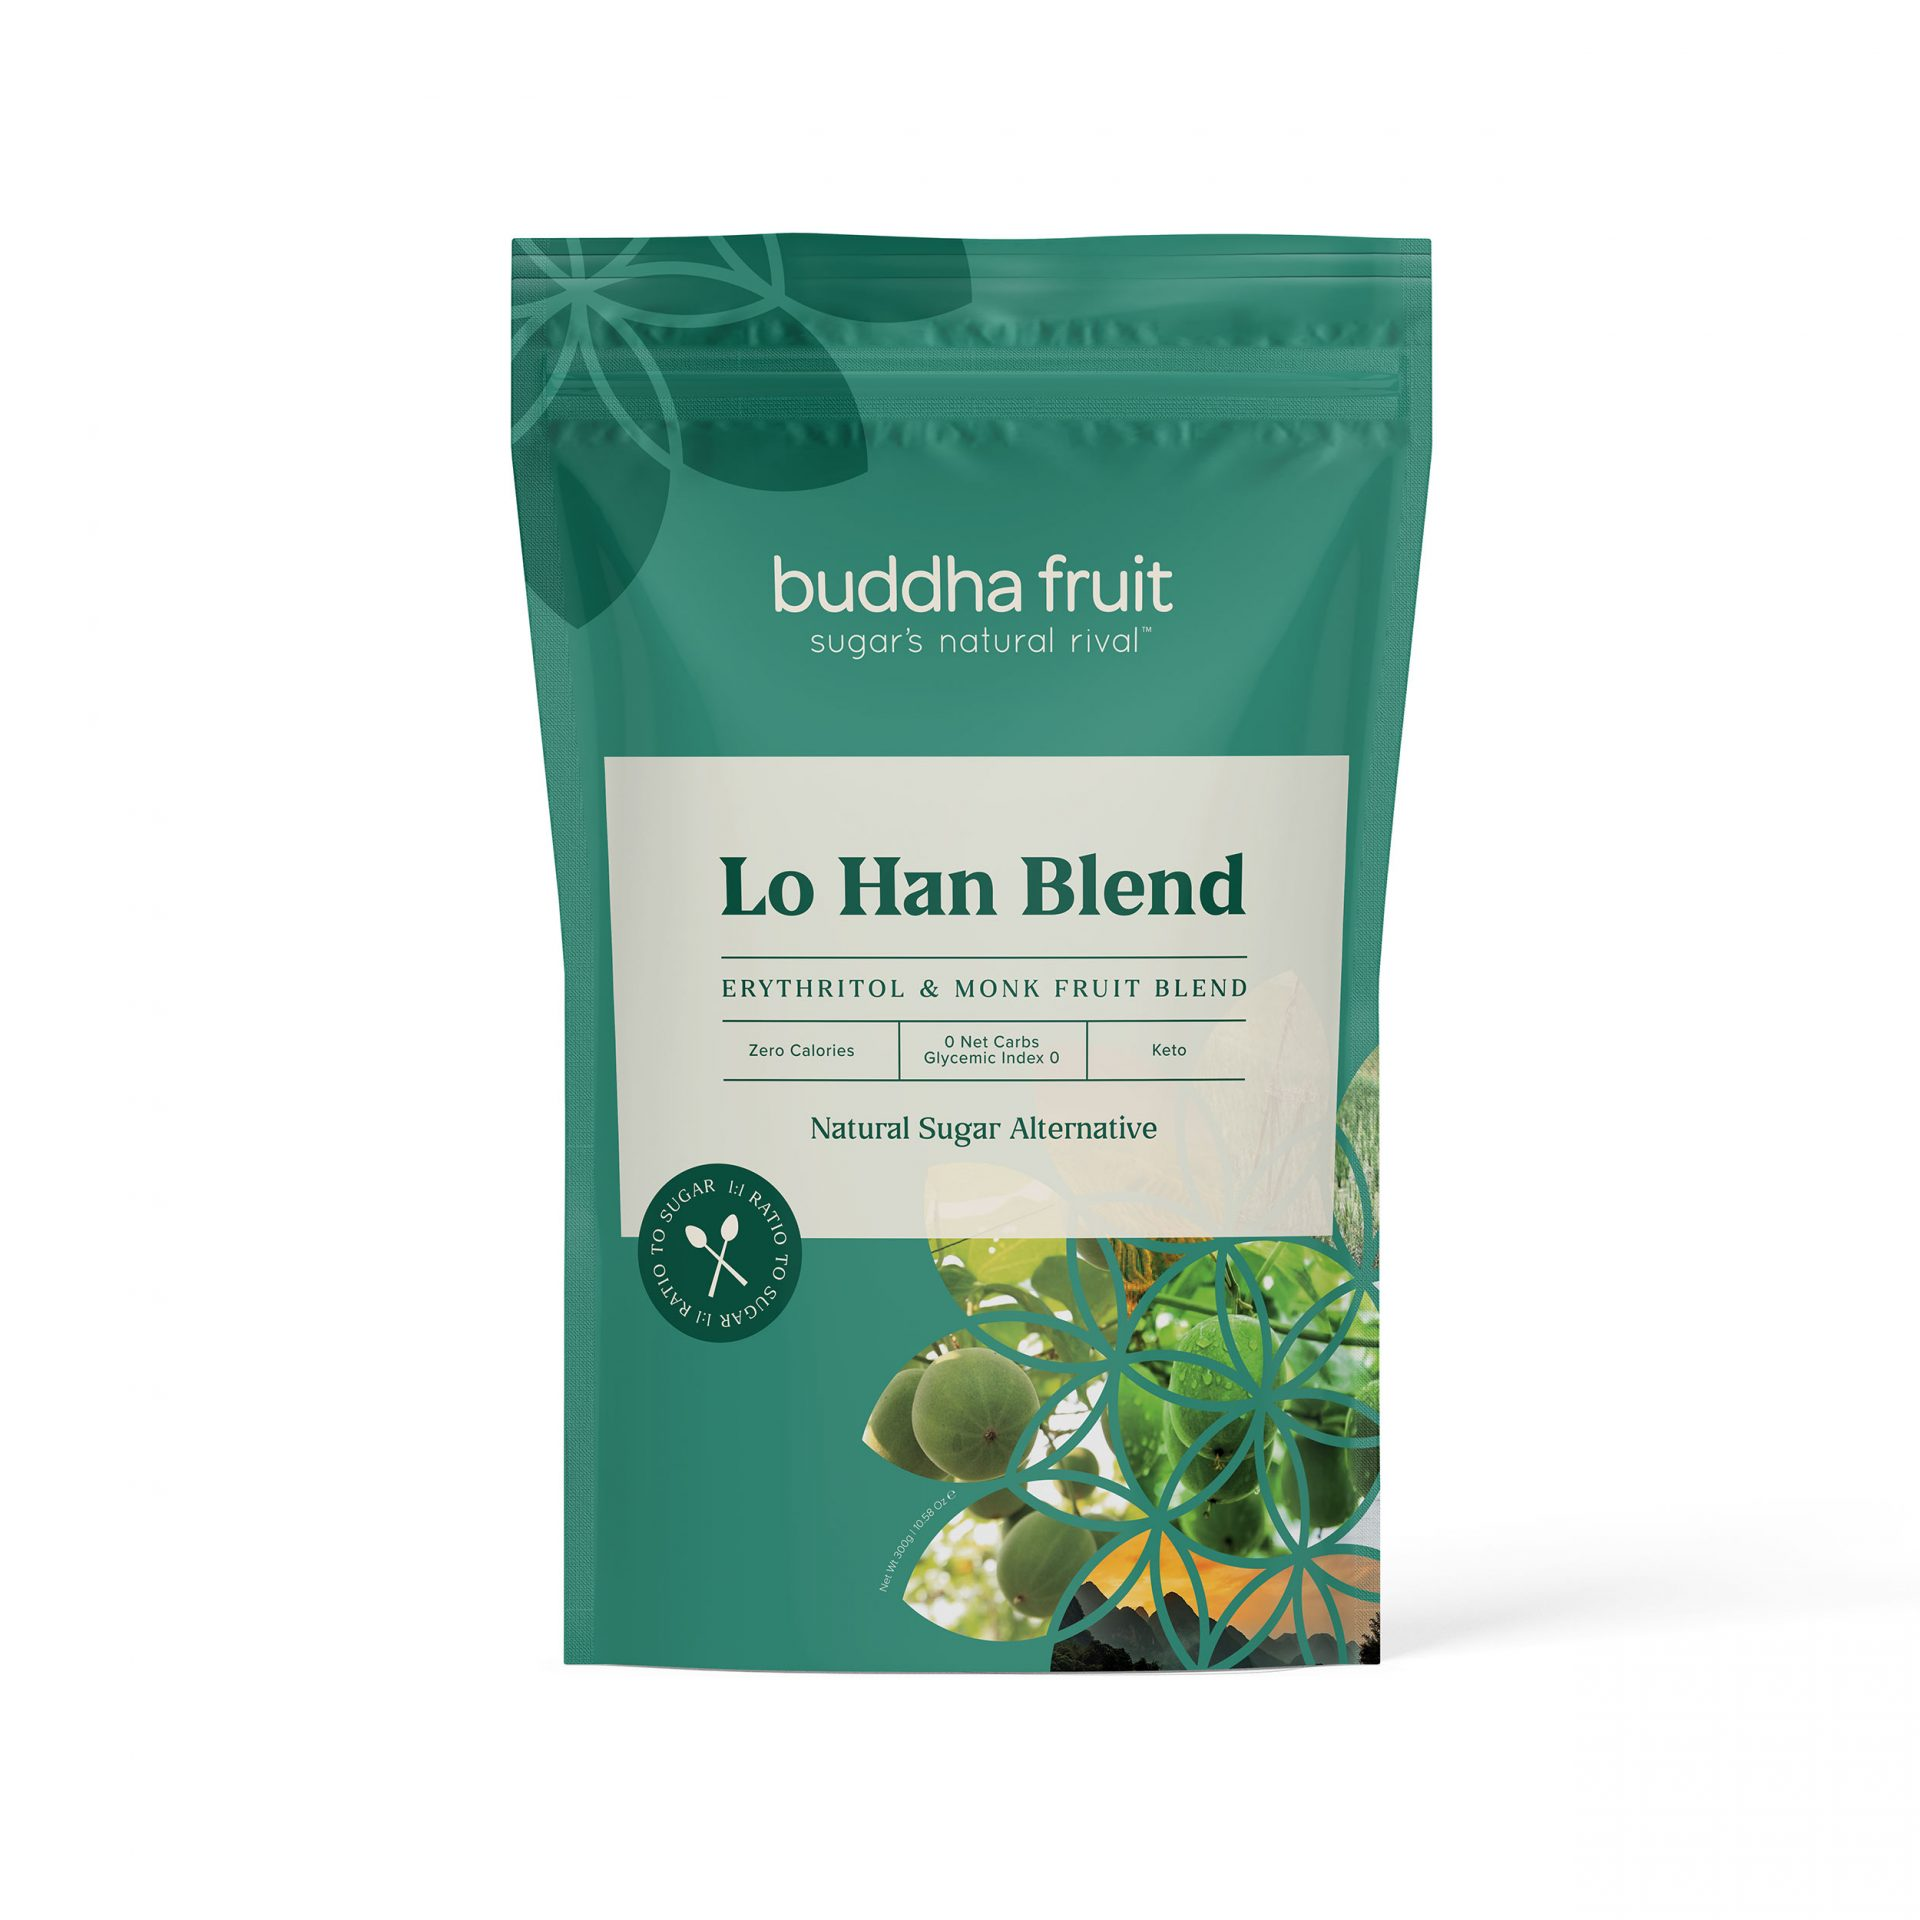 lo han blend erythritol and monk fruit